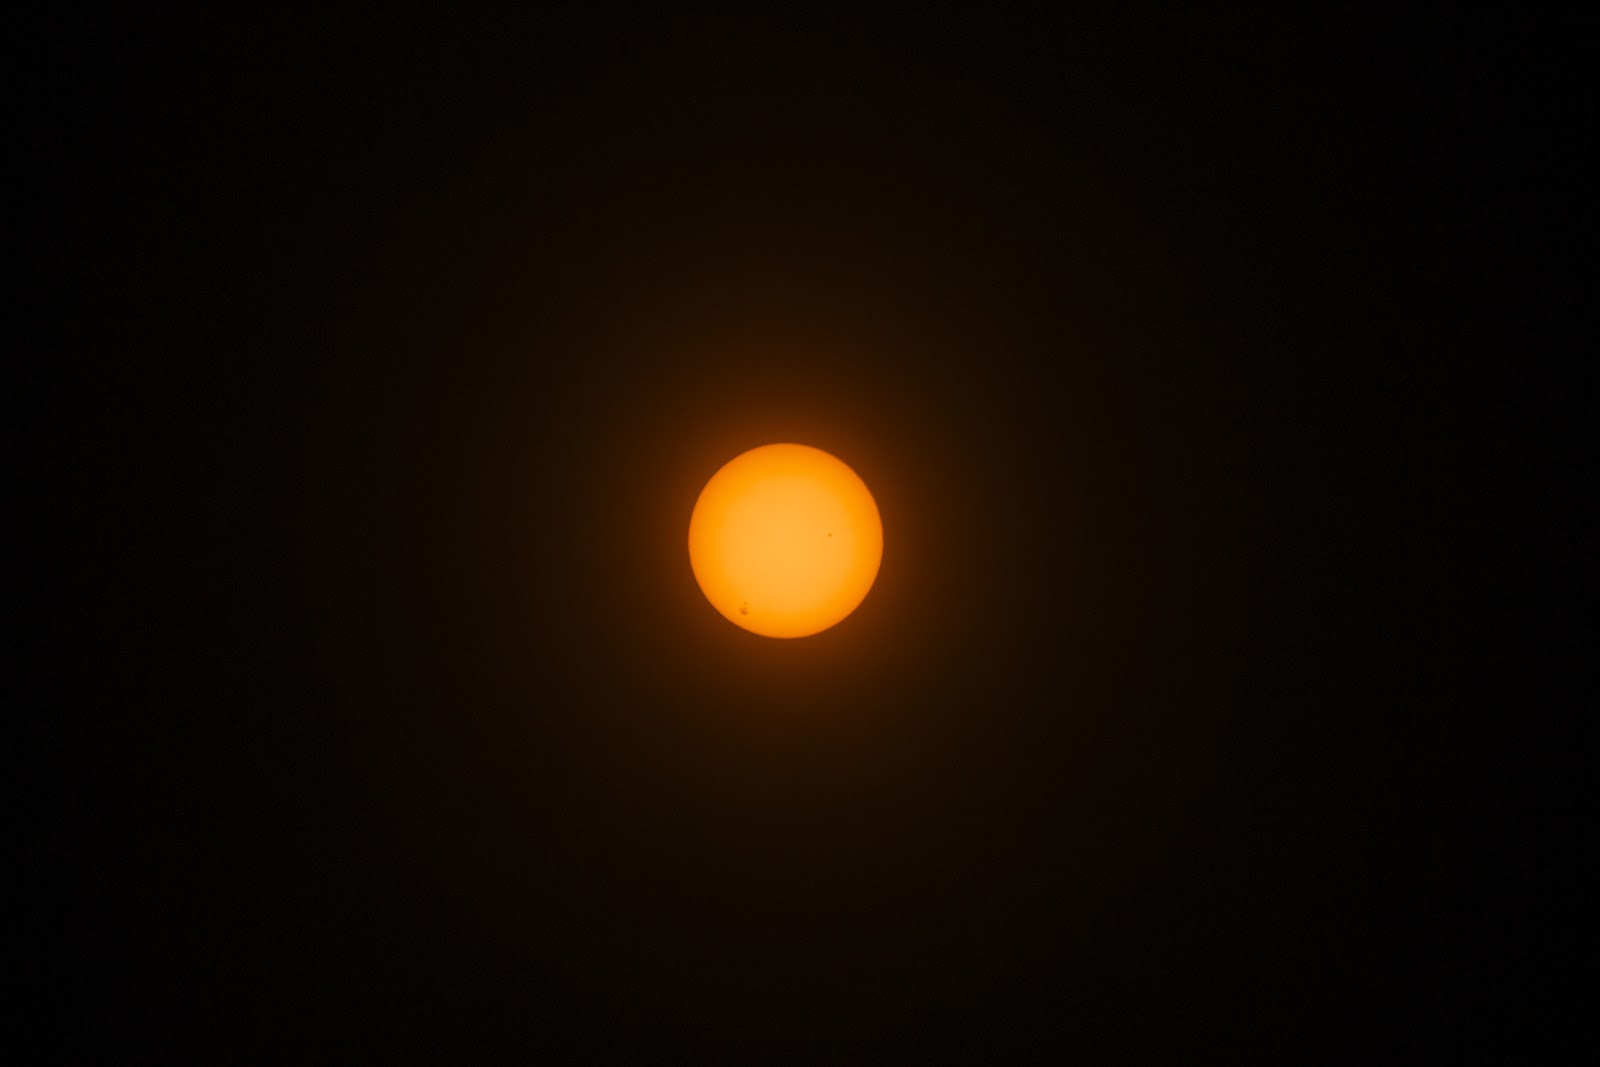 sunspots DSLR at 300mm